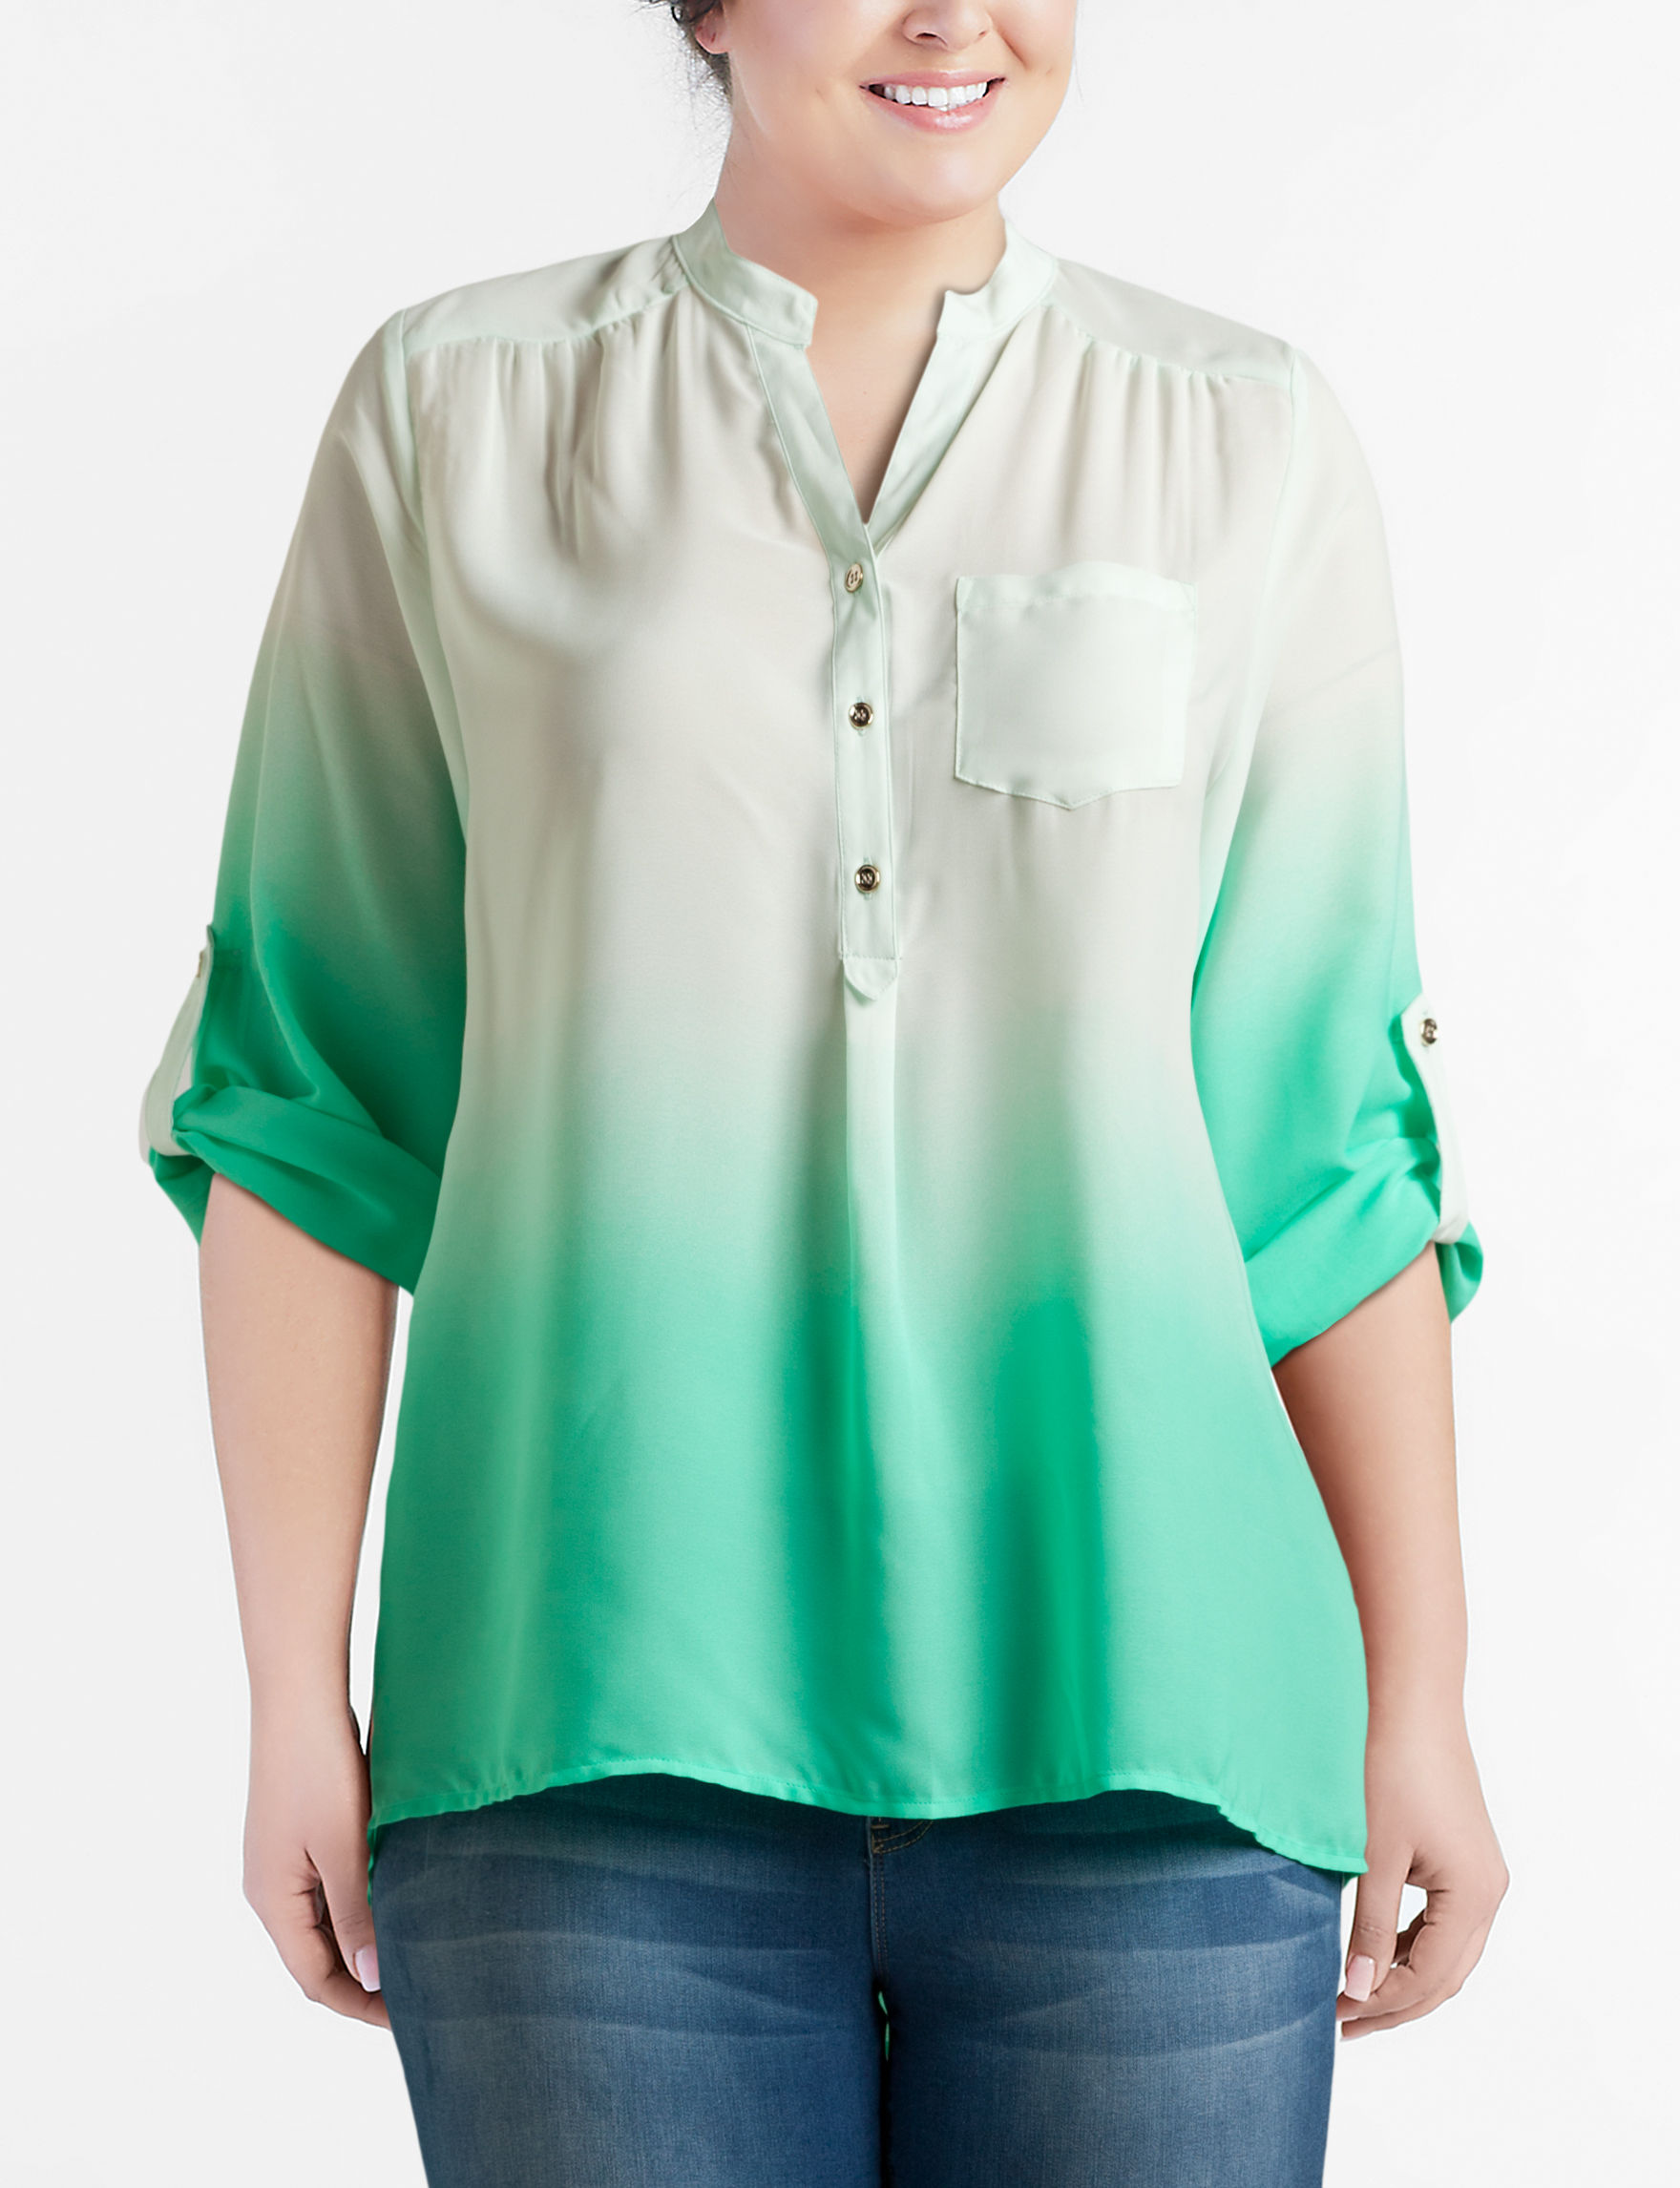 Justify Mint Shirts & Blouses